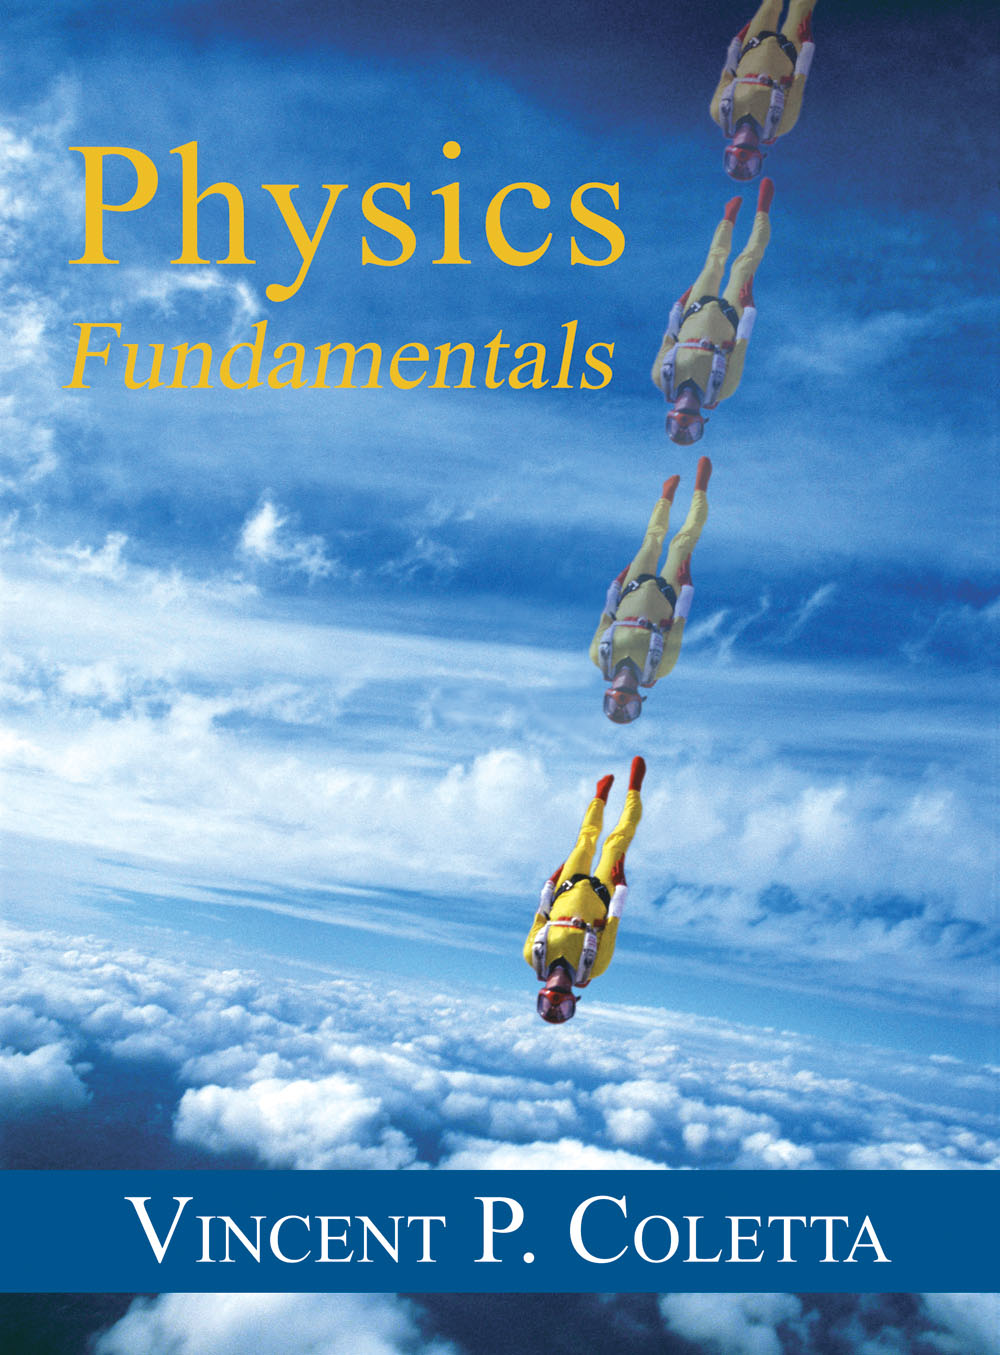 Physics Fundamentals by Vincent Coletta